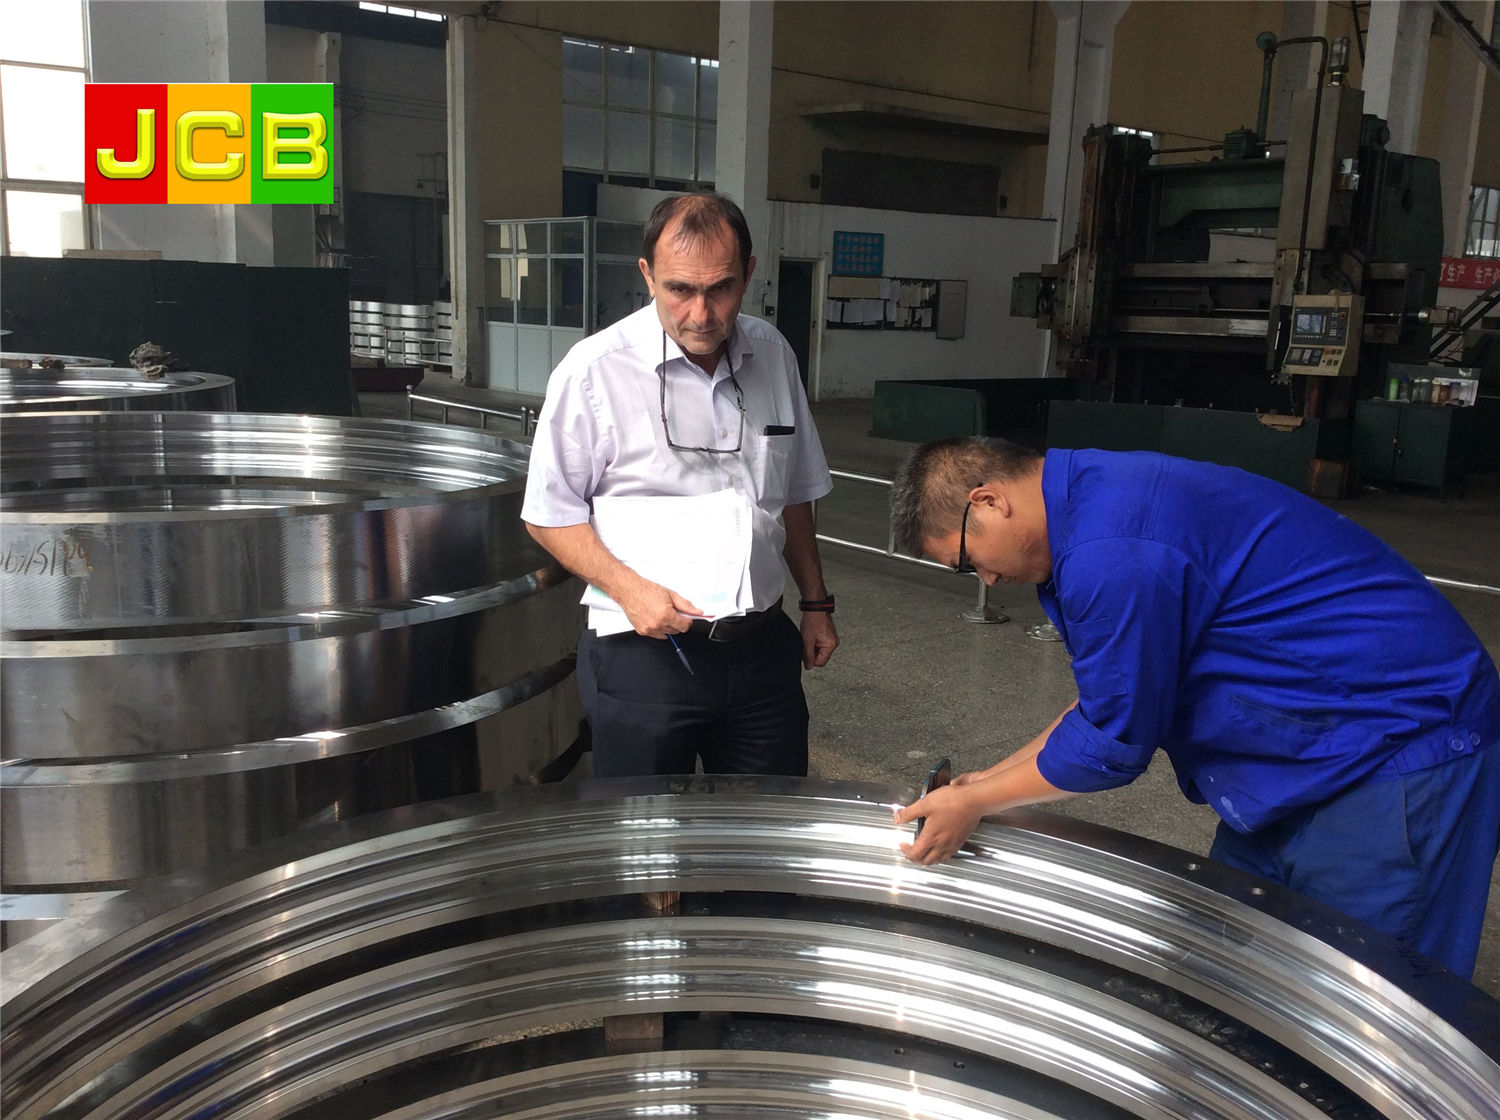 workshop of JCB bearing company